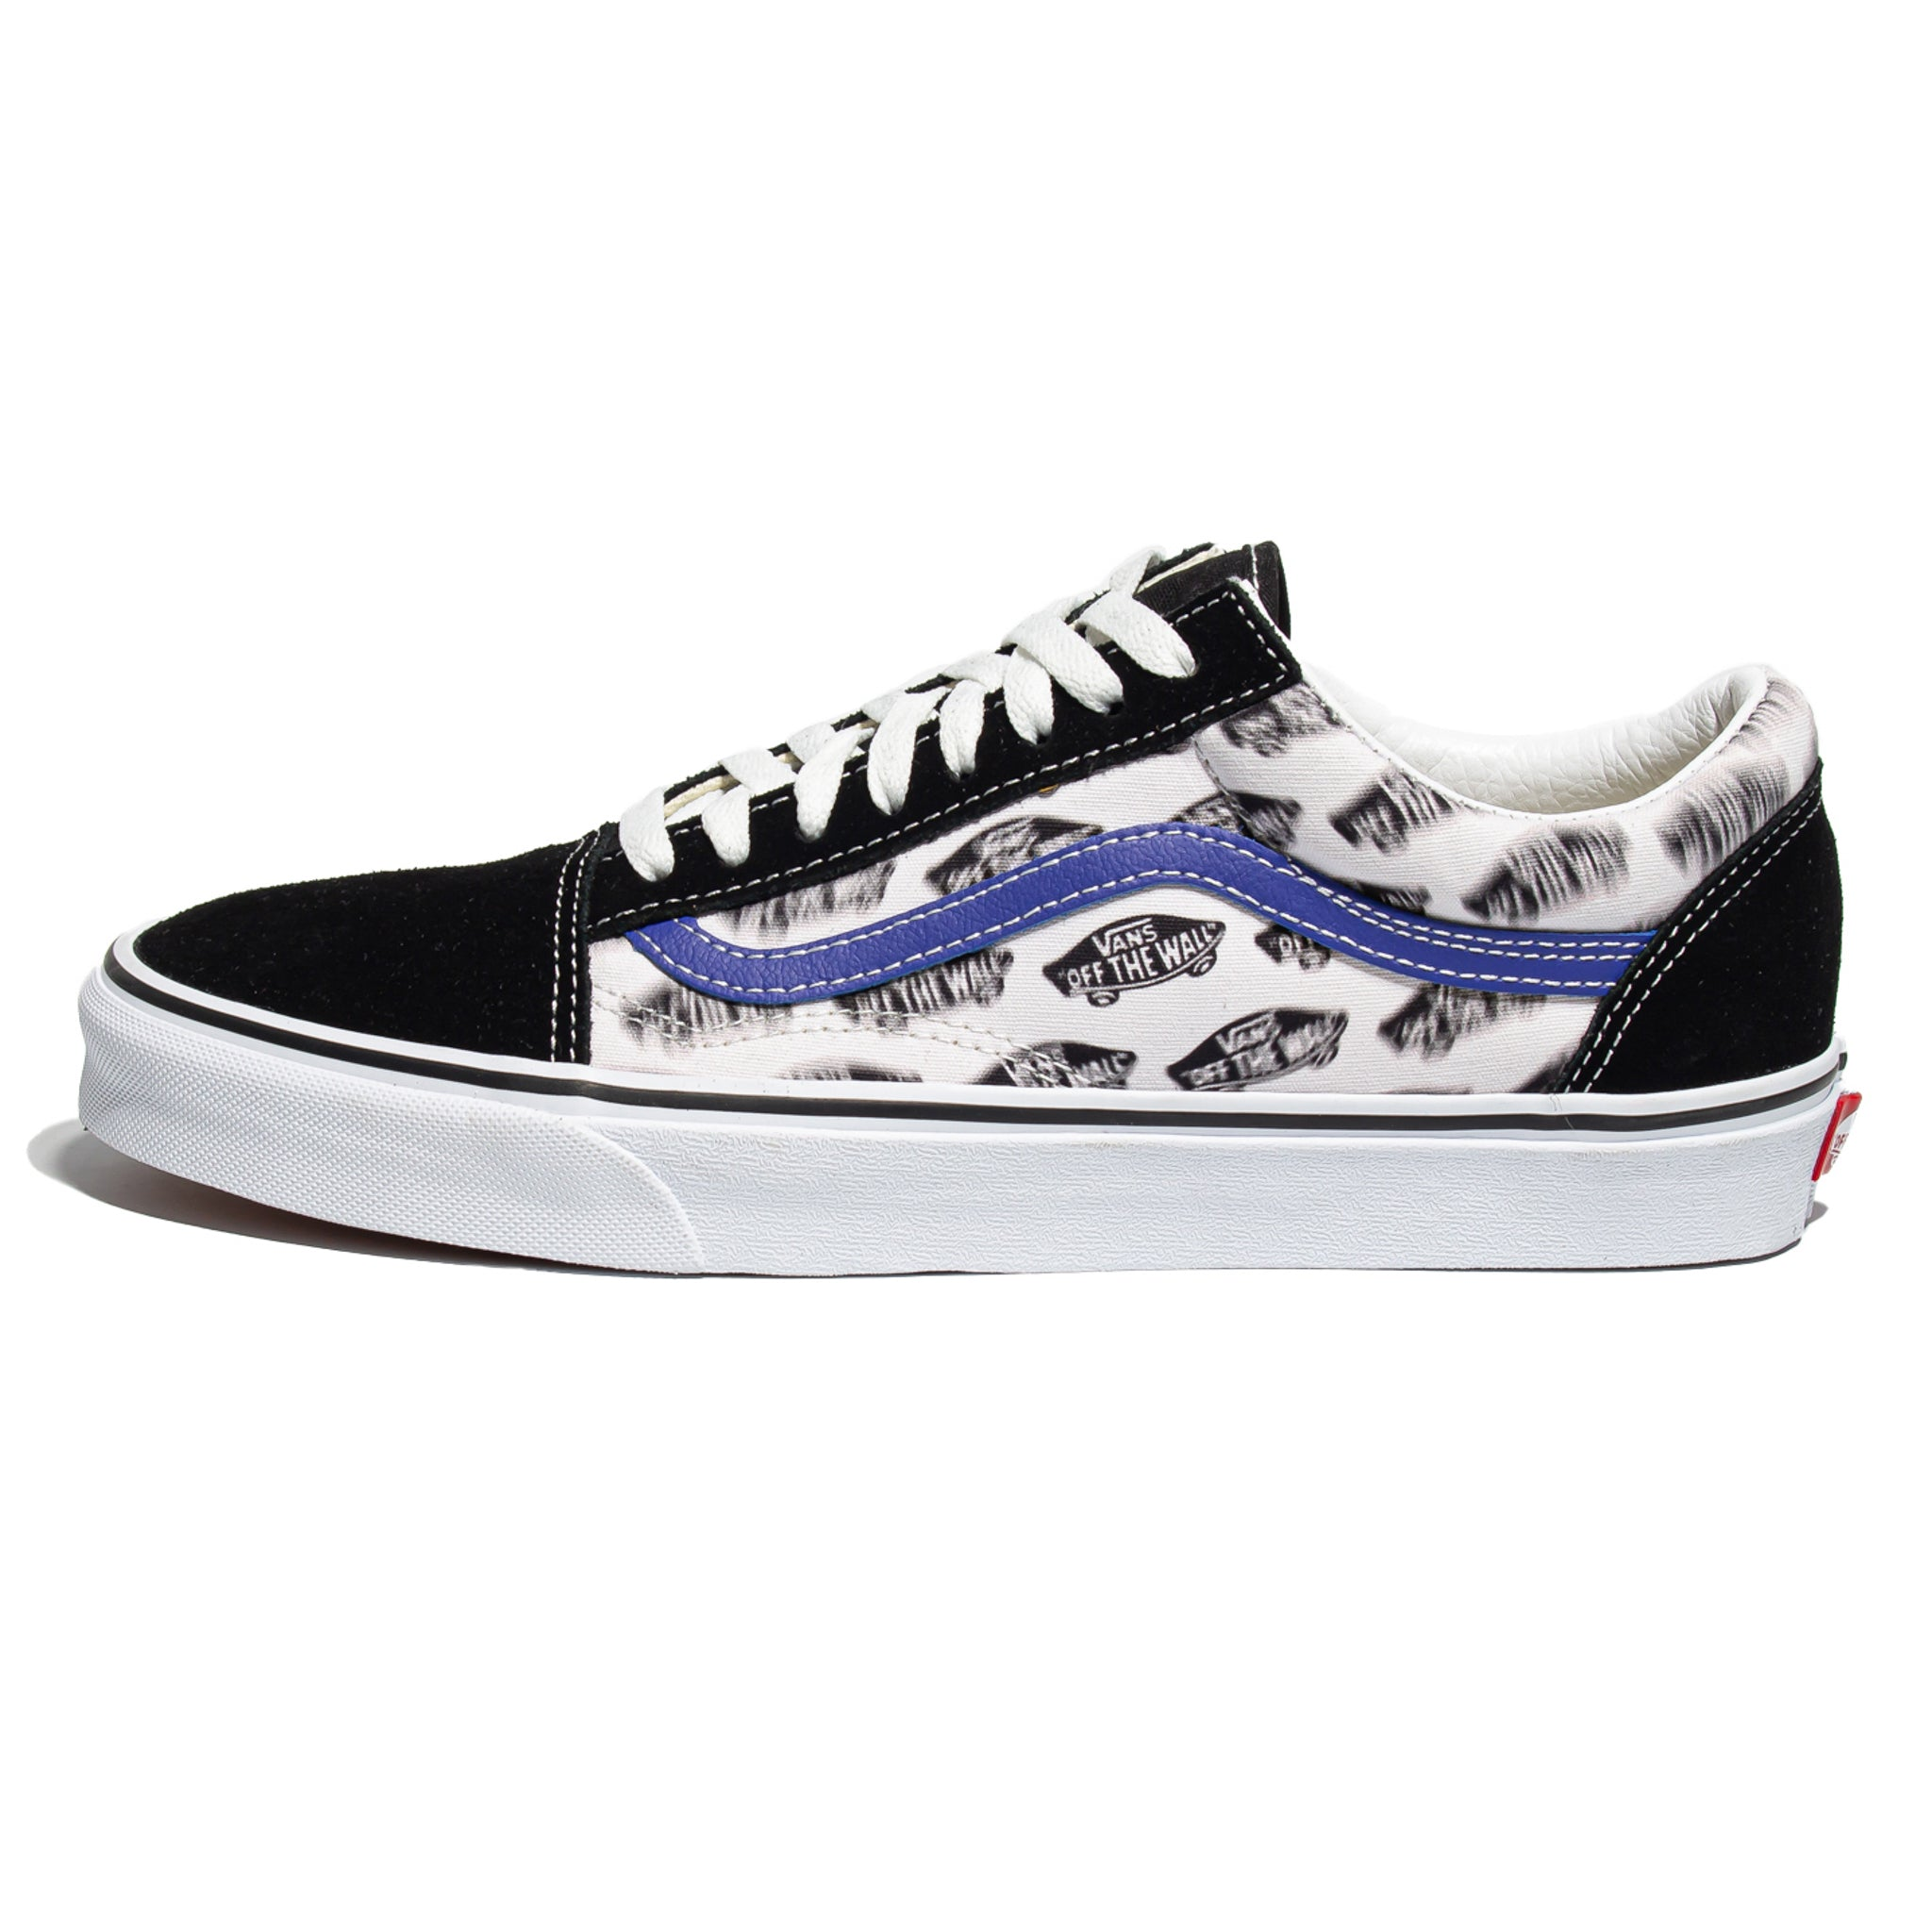 Vans Old Skool Blur Boards